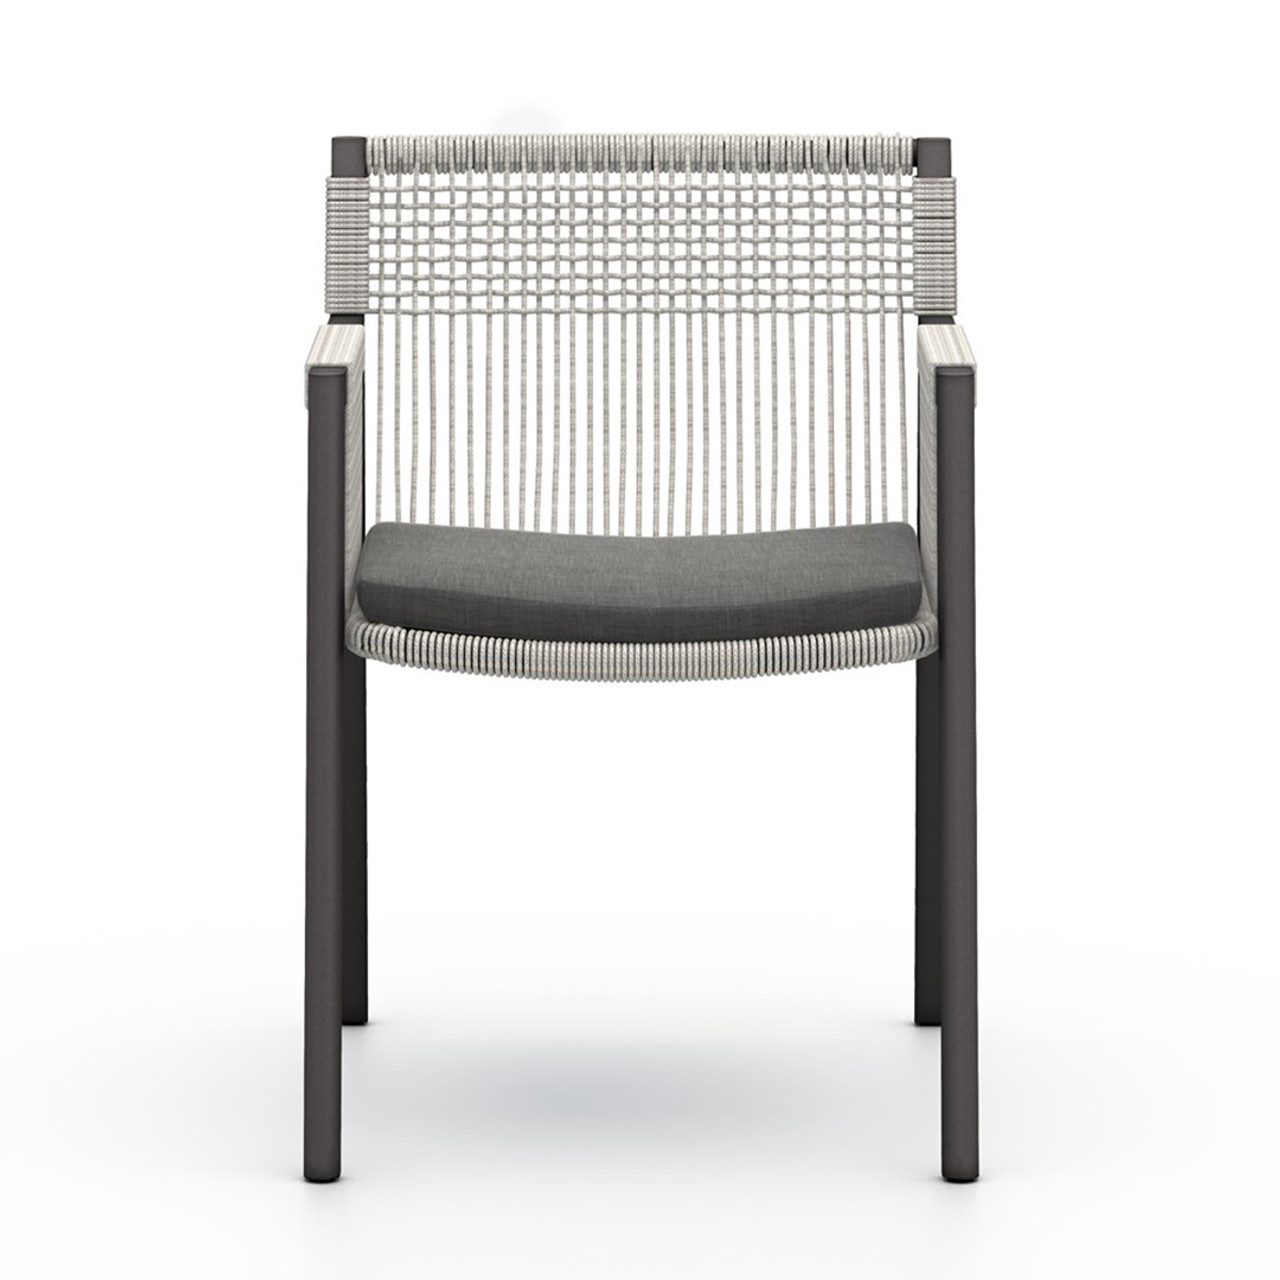 Sabin Outdoor Dining Chair